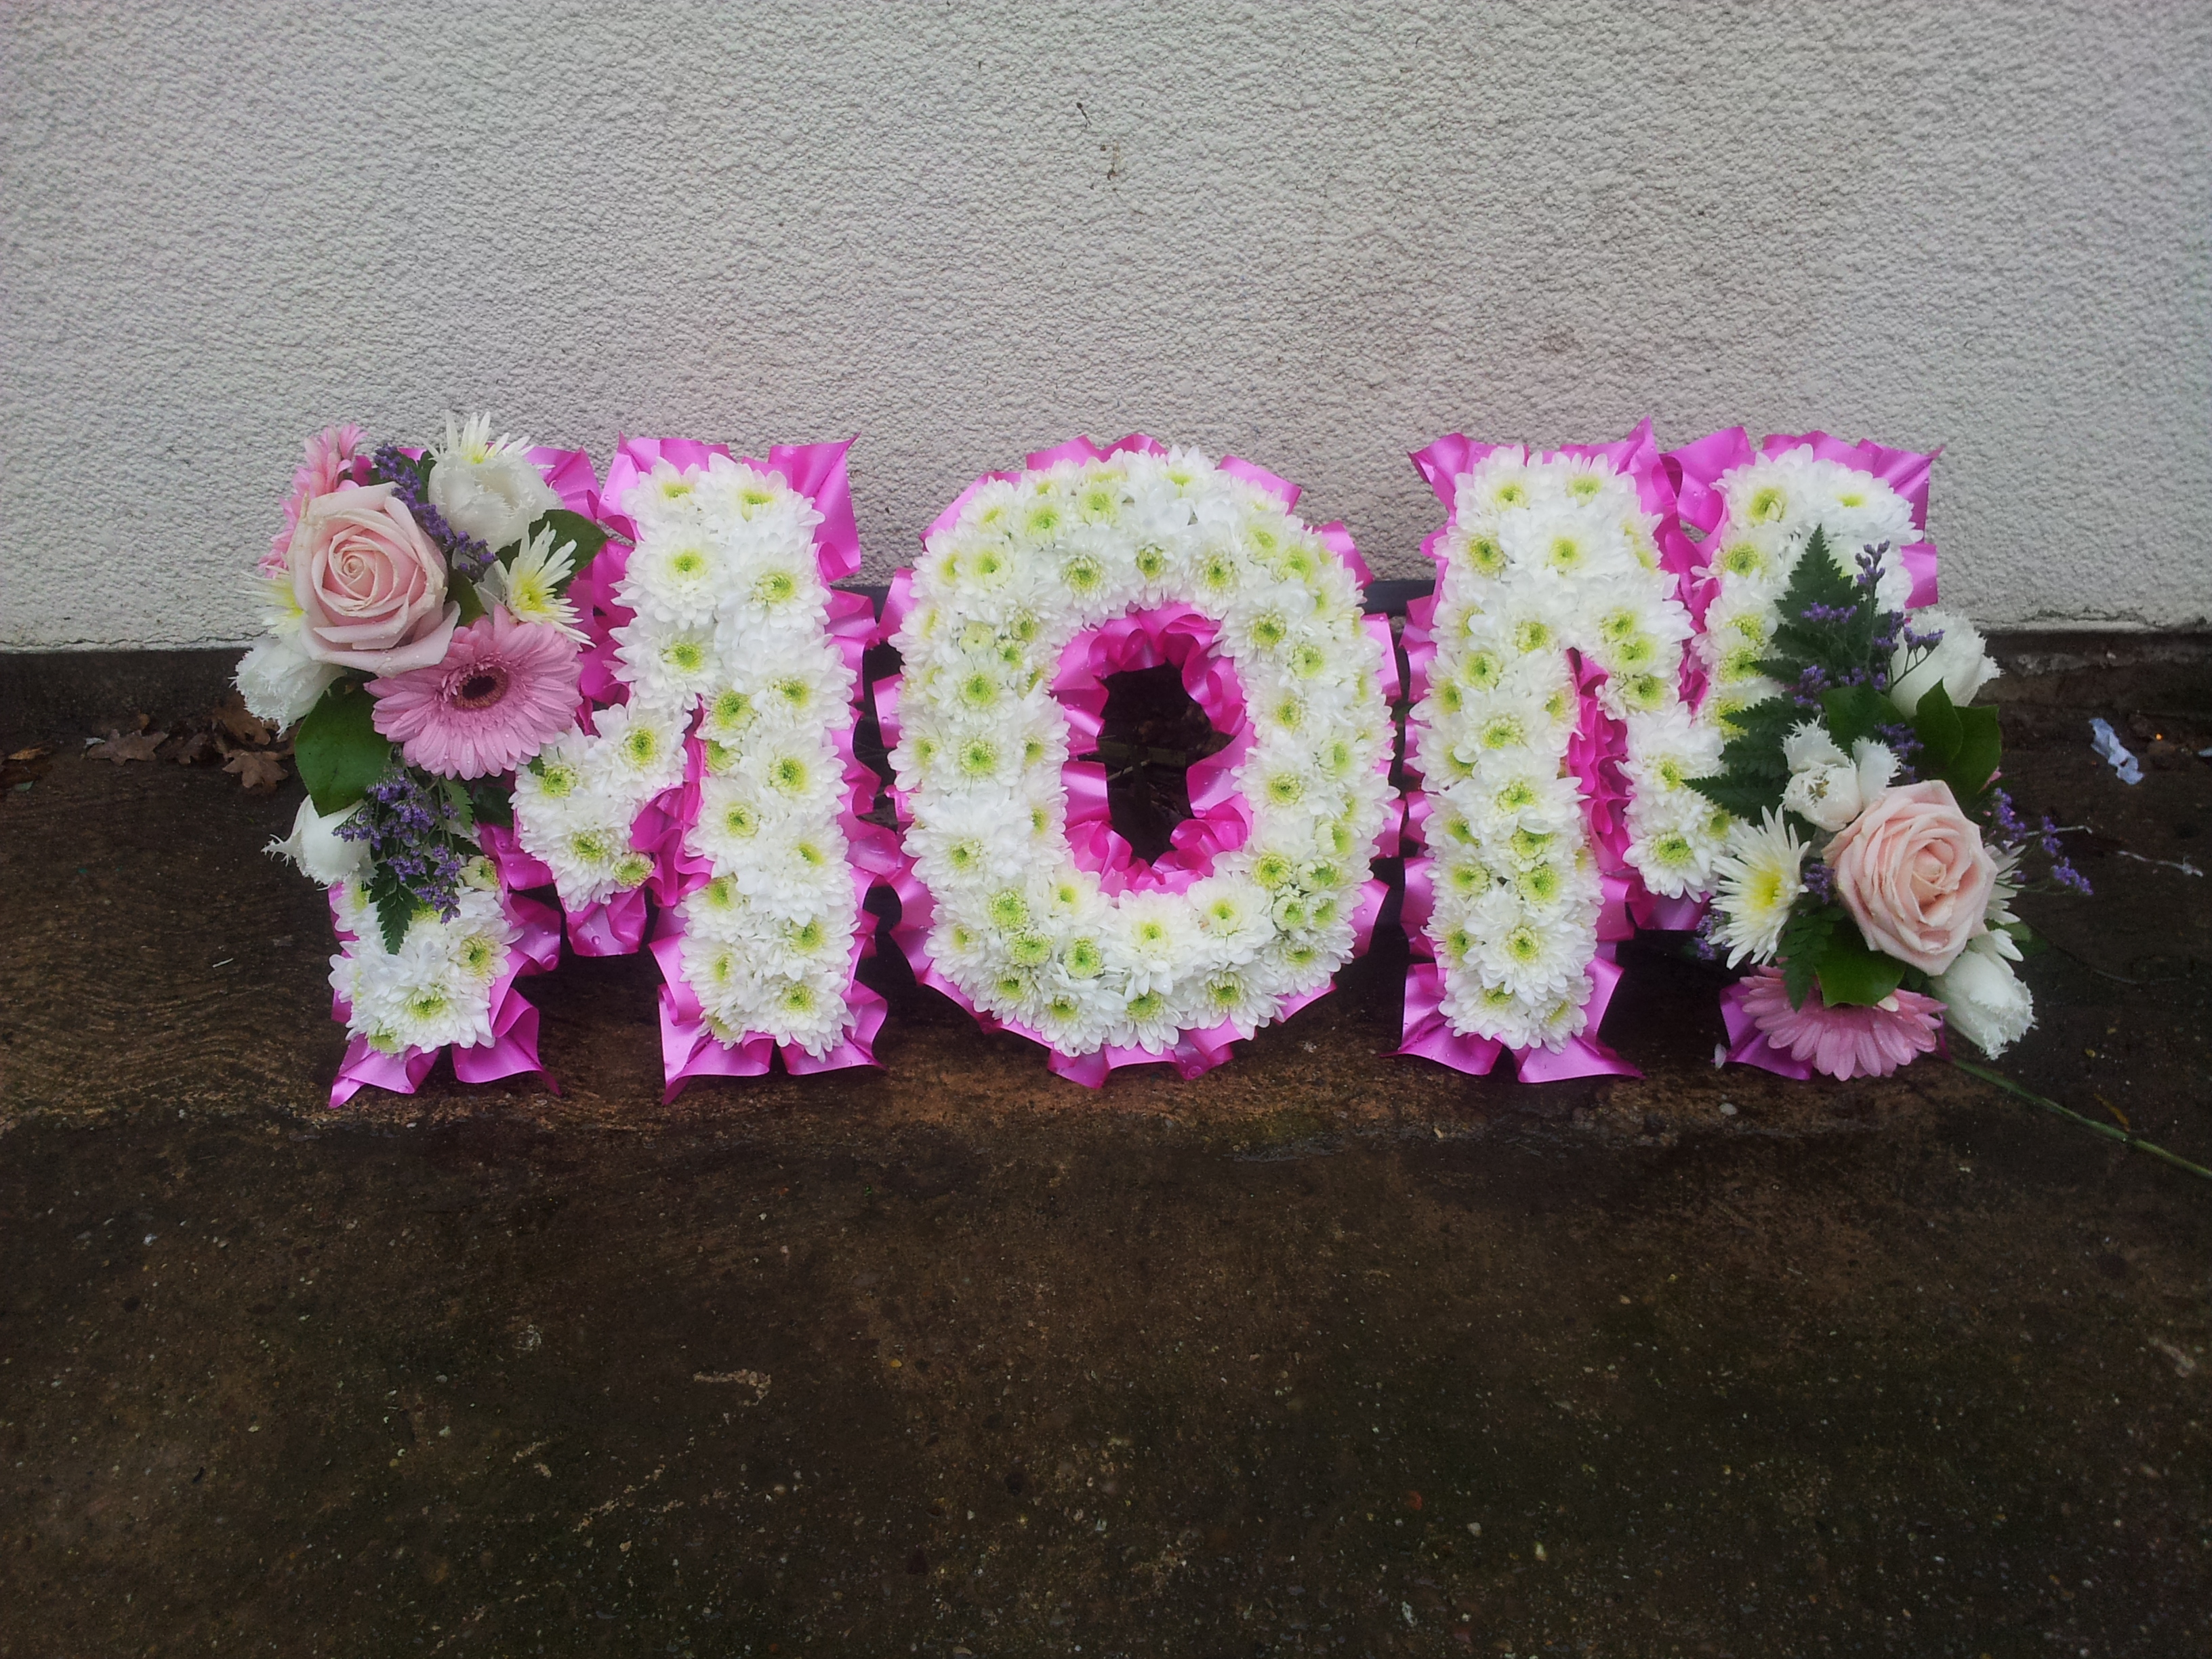 Letters and numbers cz handsaker floral designs czh funeral letters numbers 005g izmirmasajfo